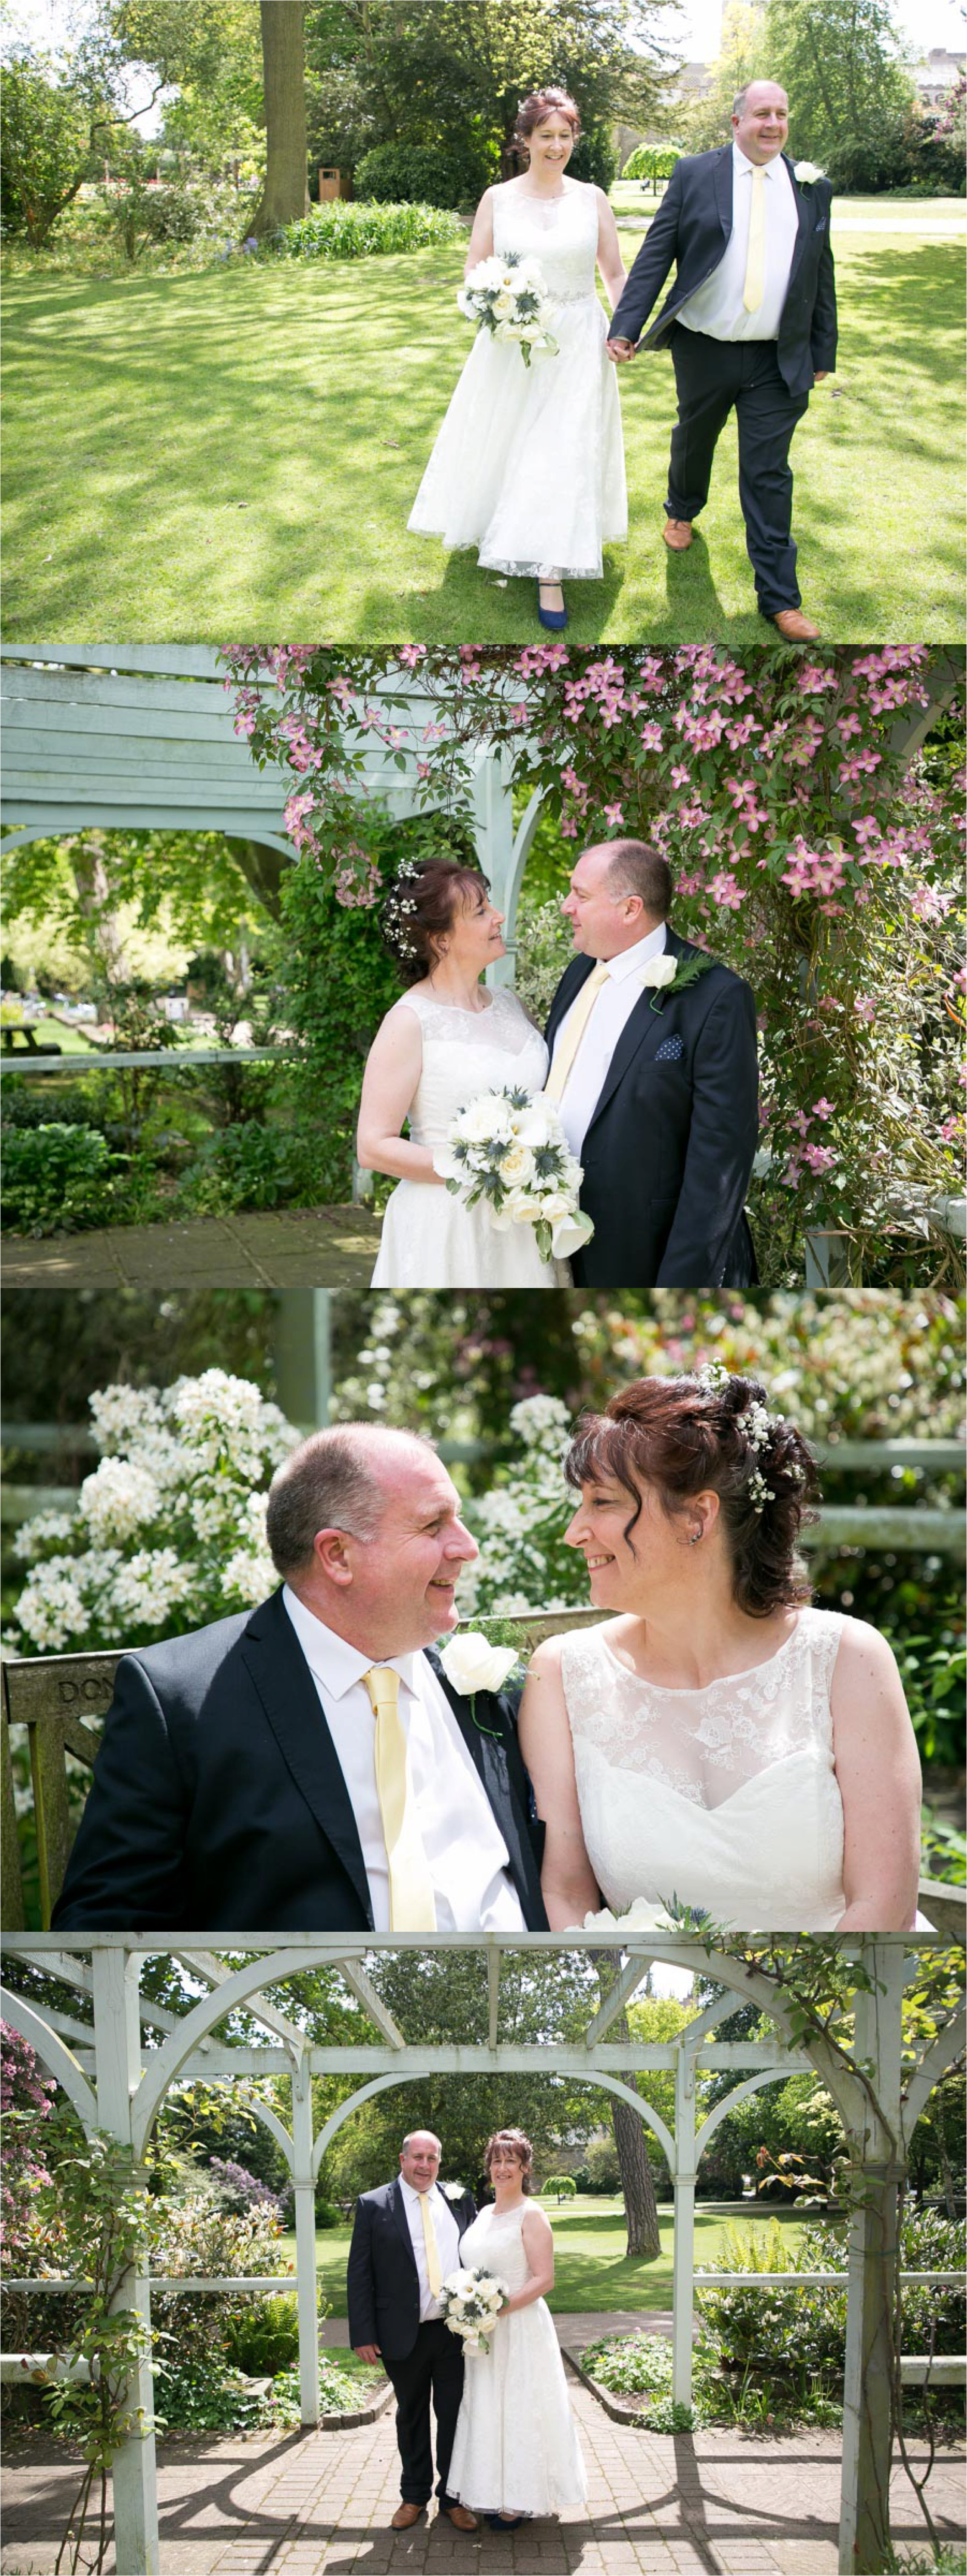 Wedding at Athenaeum Bury St Edmunds, with photographs in Abbey Gardens